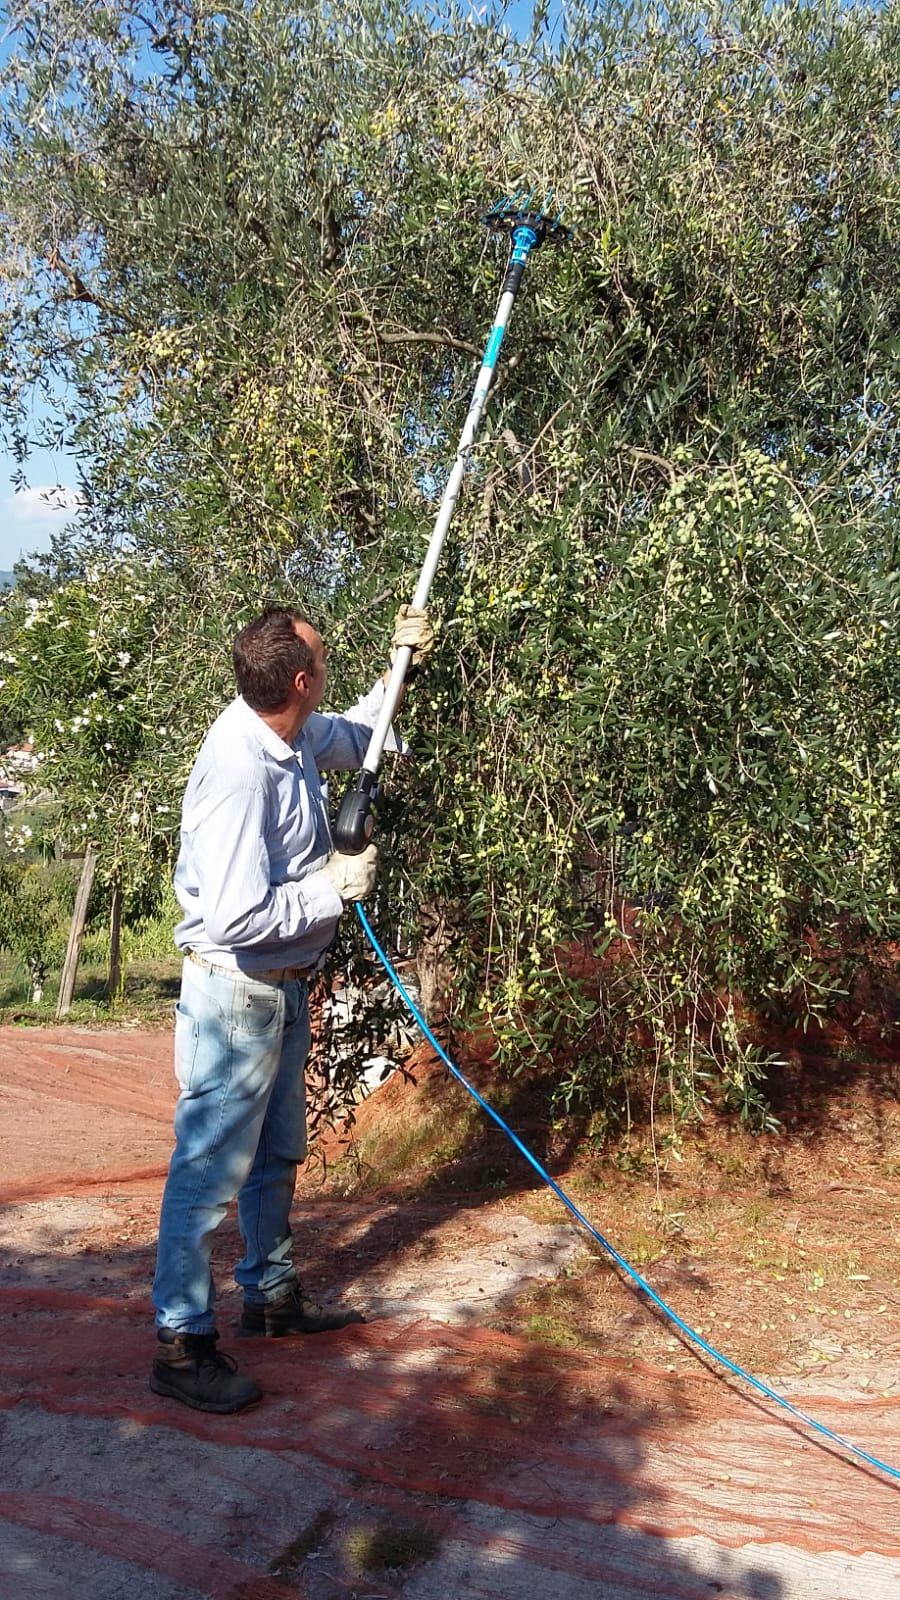 GIAMPIERO KNOCKING THE OLIVES OFF THE TREES WITH 'THE TWIZZLER'